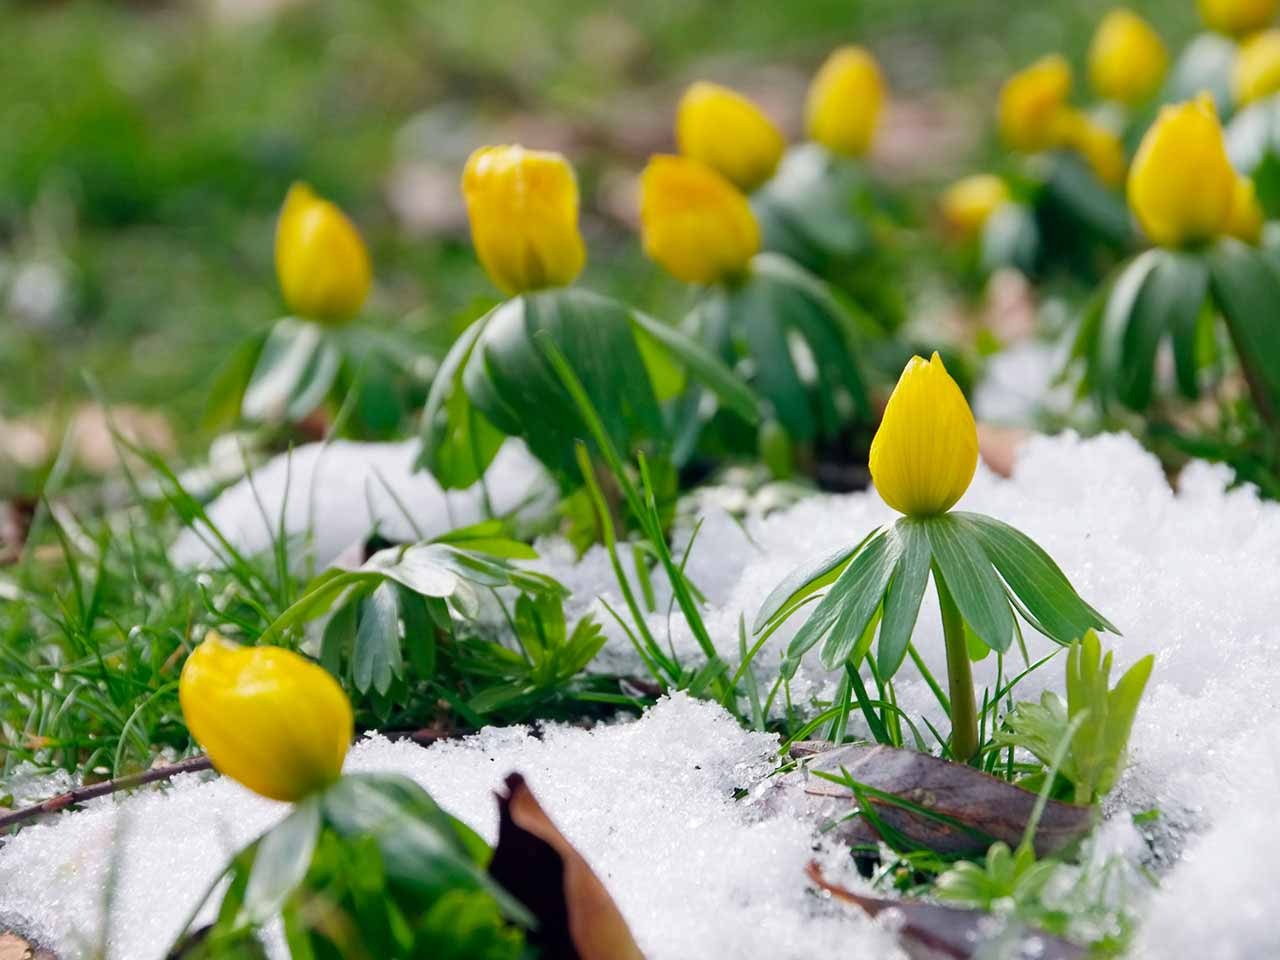 Yellow winter aconites pushing through the snow to flower